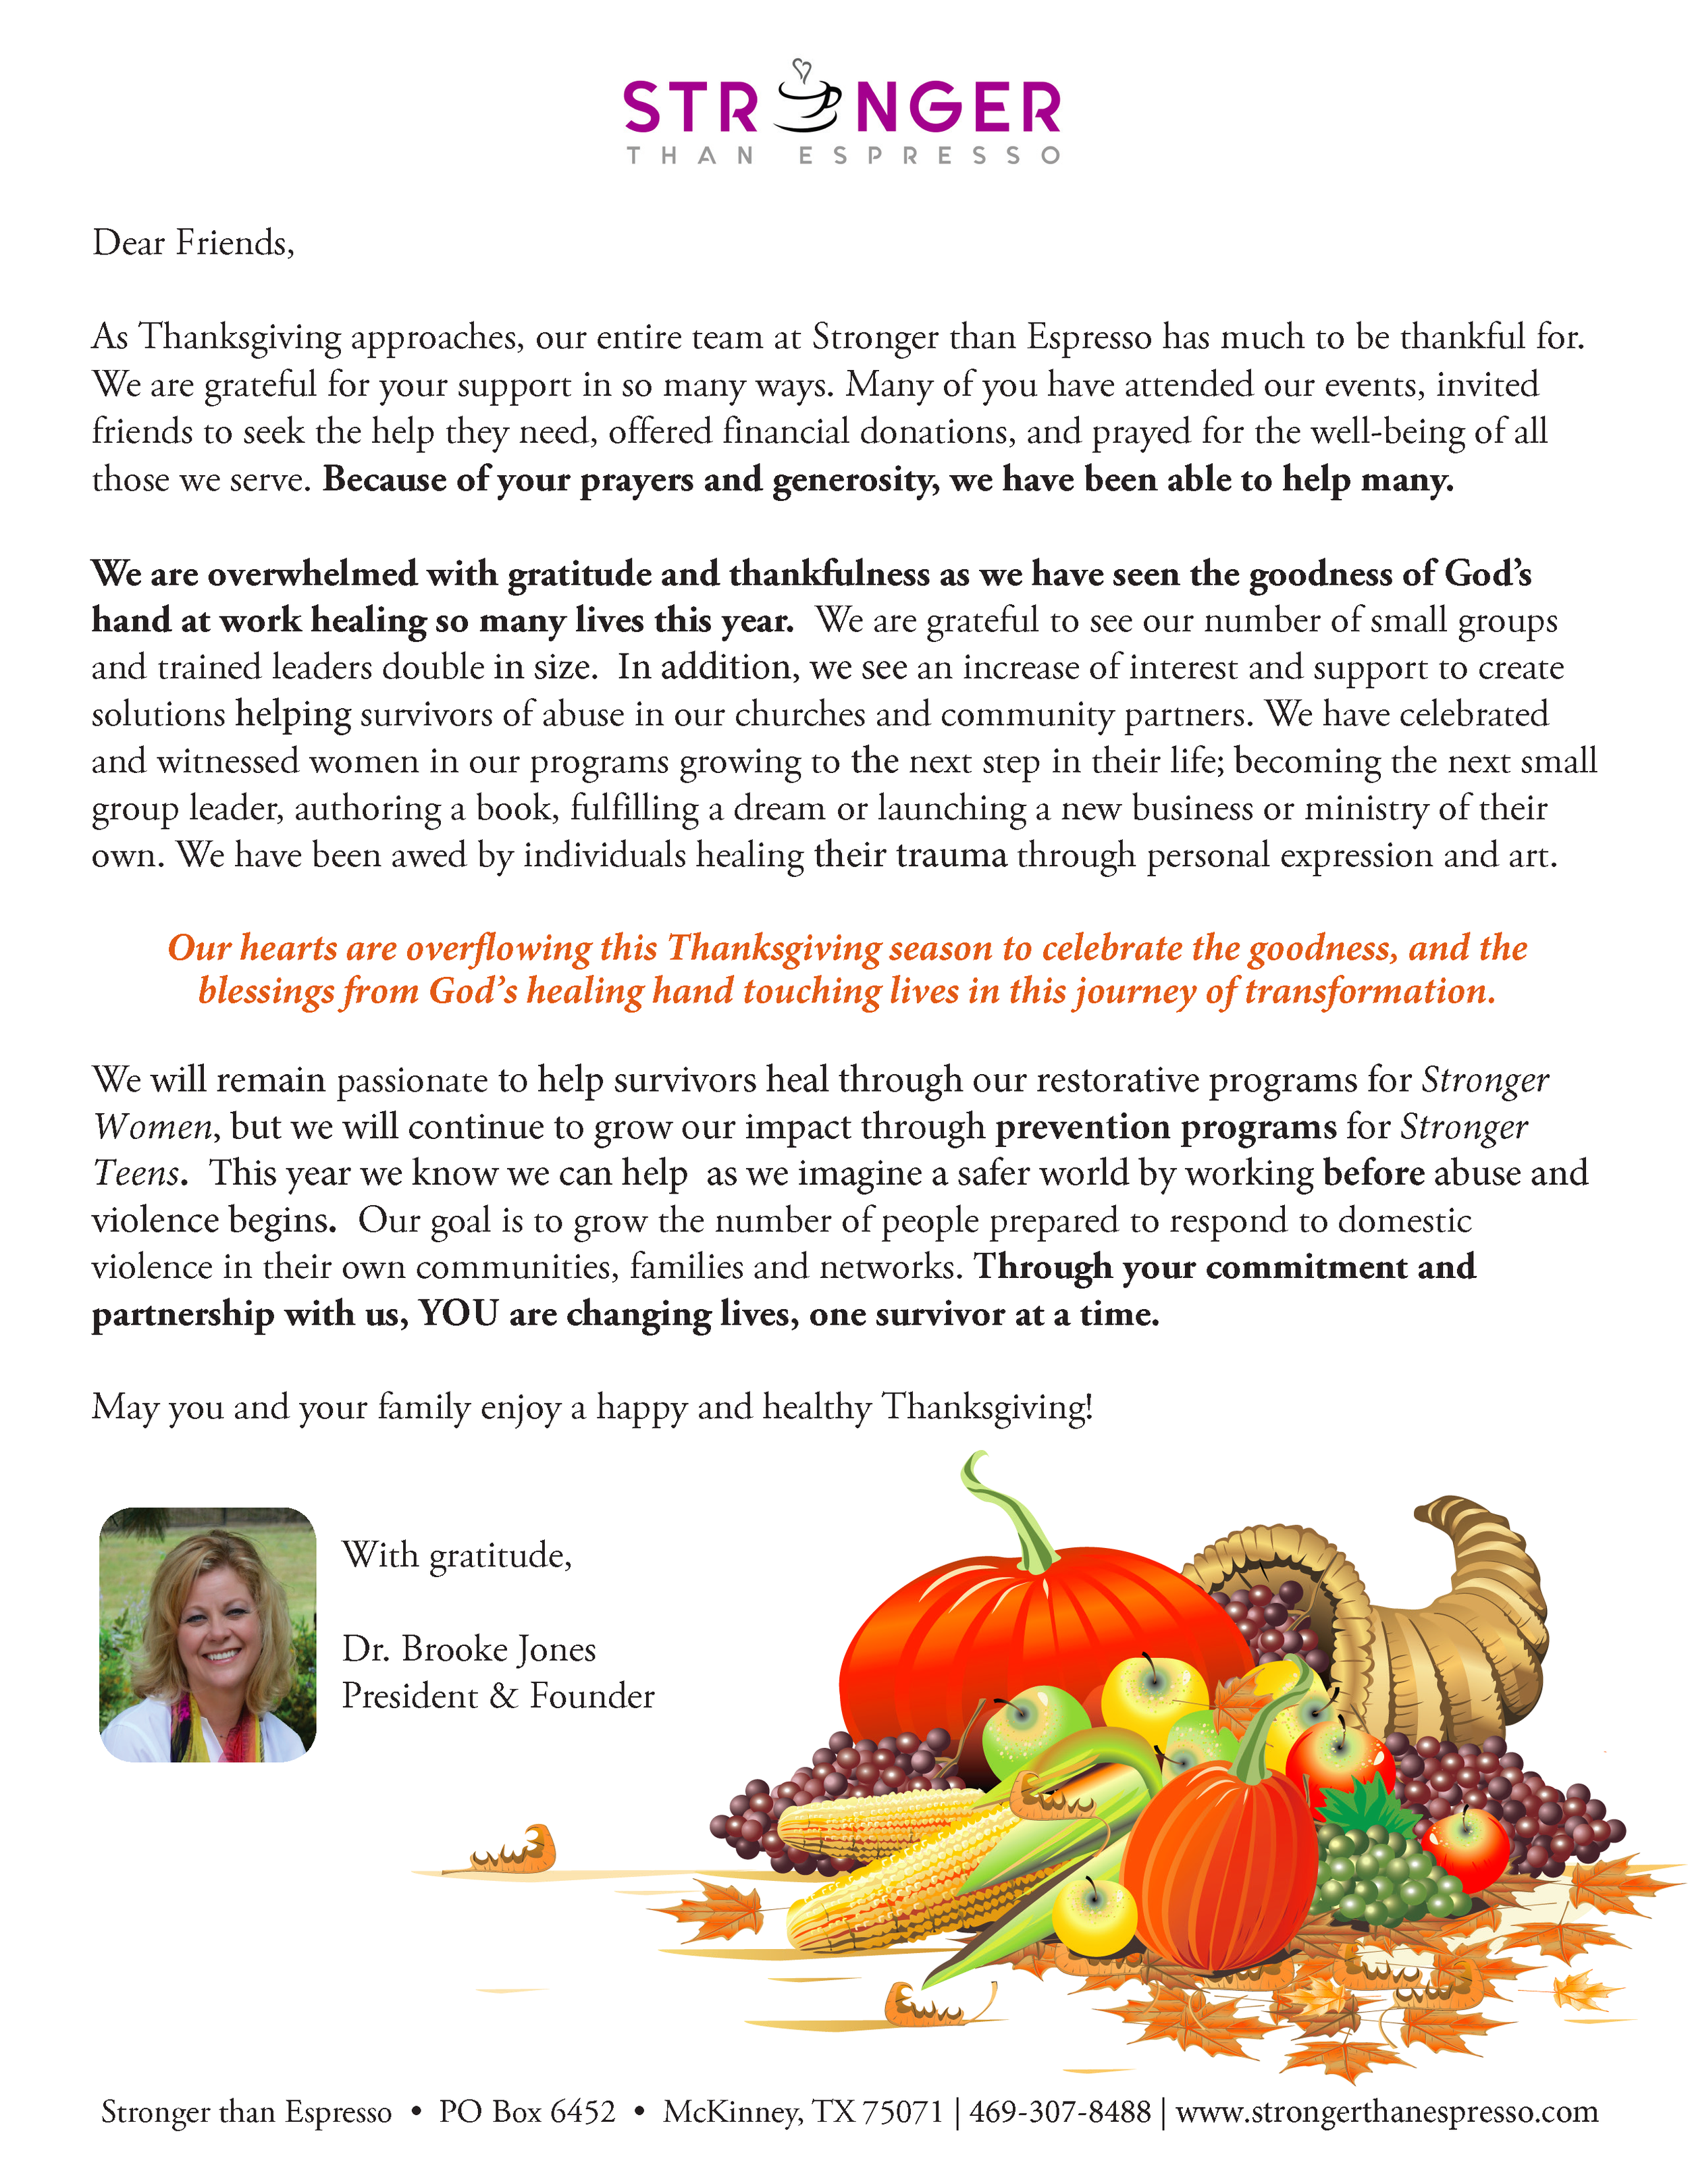 Thankgiving 2018 letter-8.5x11_Page_1.png